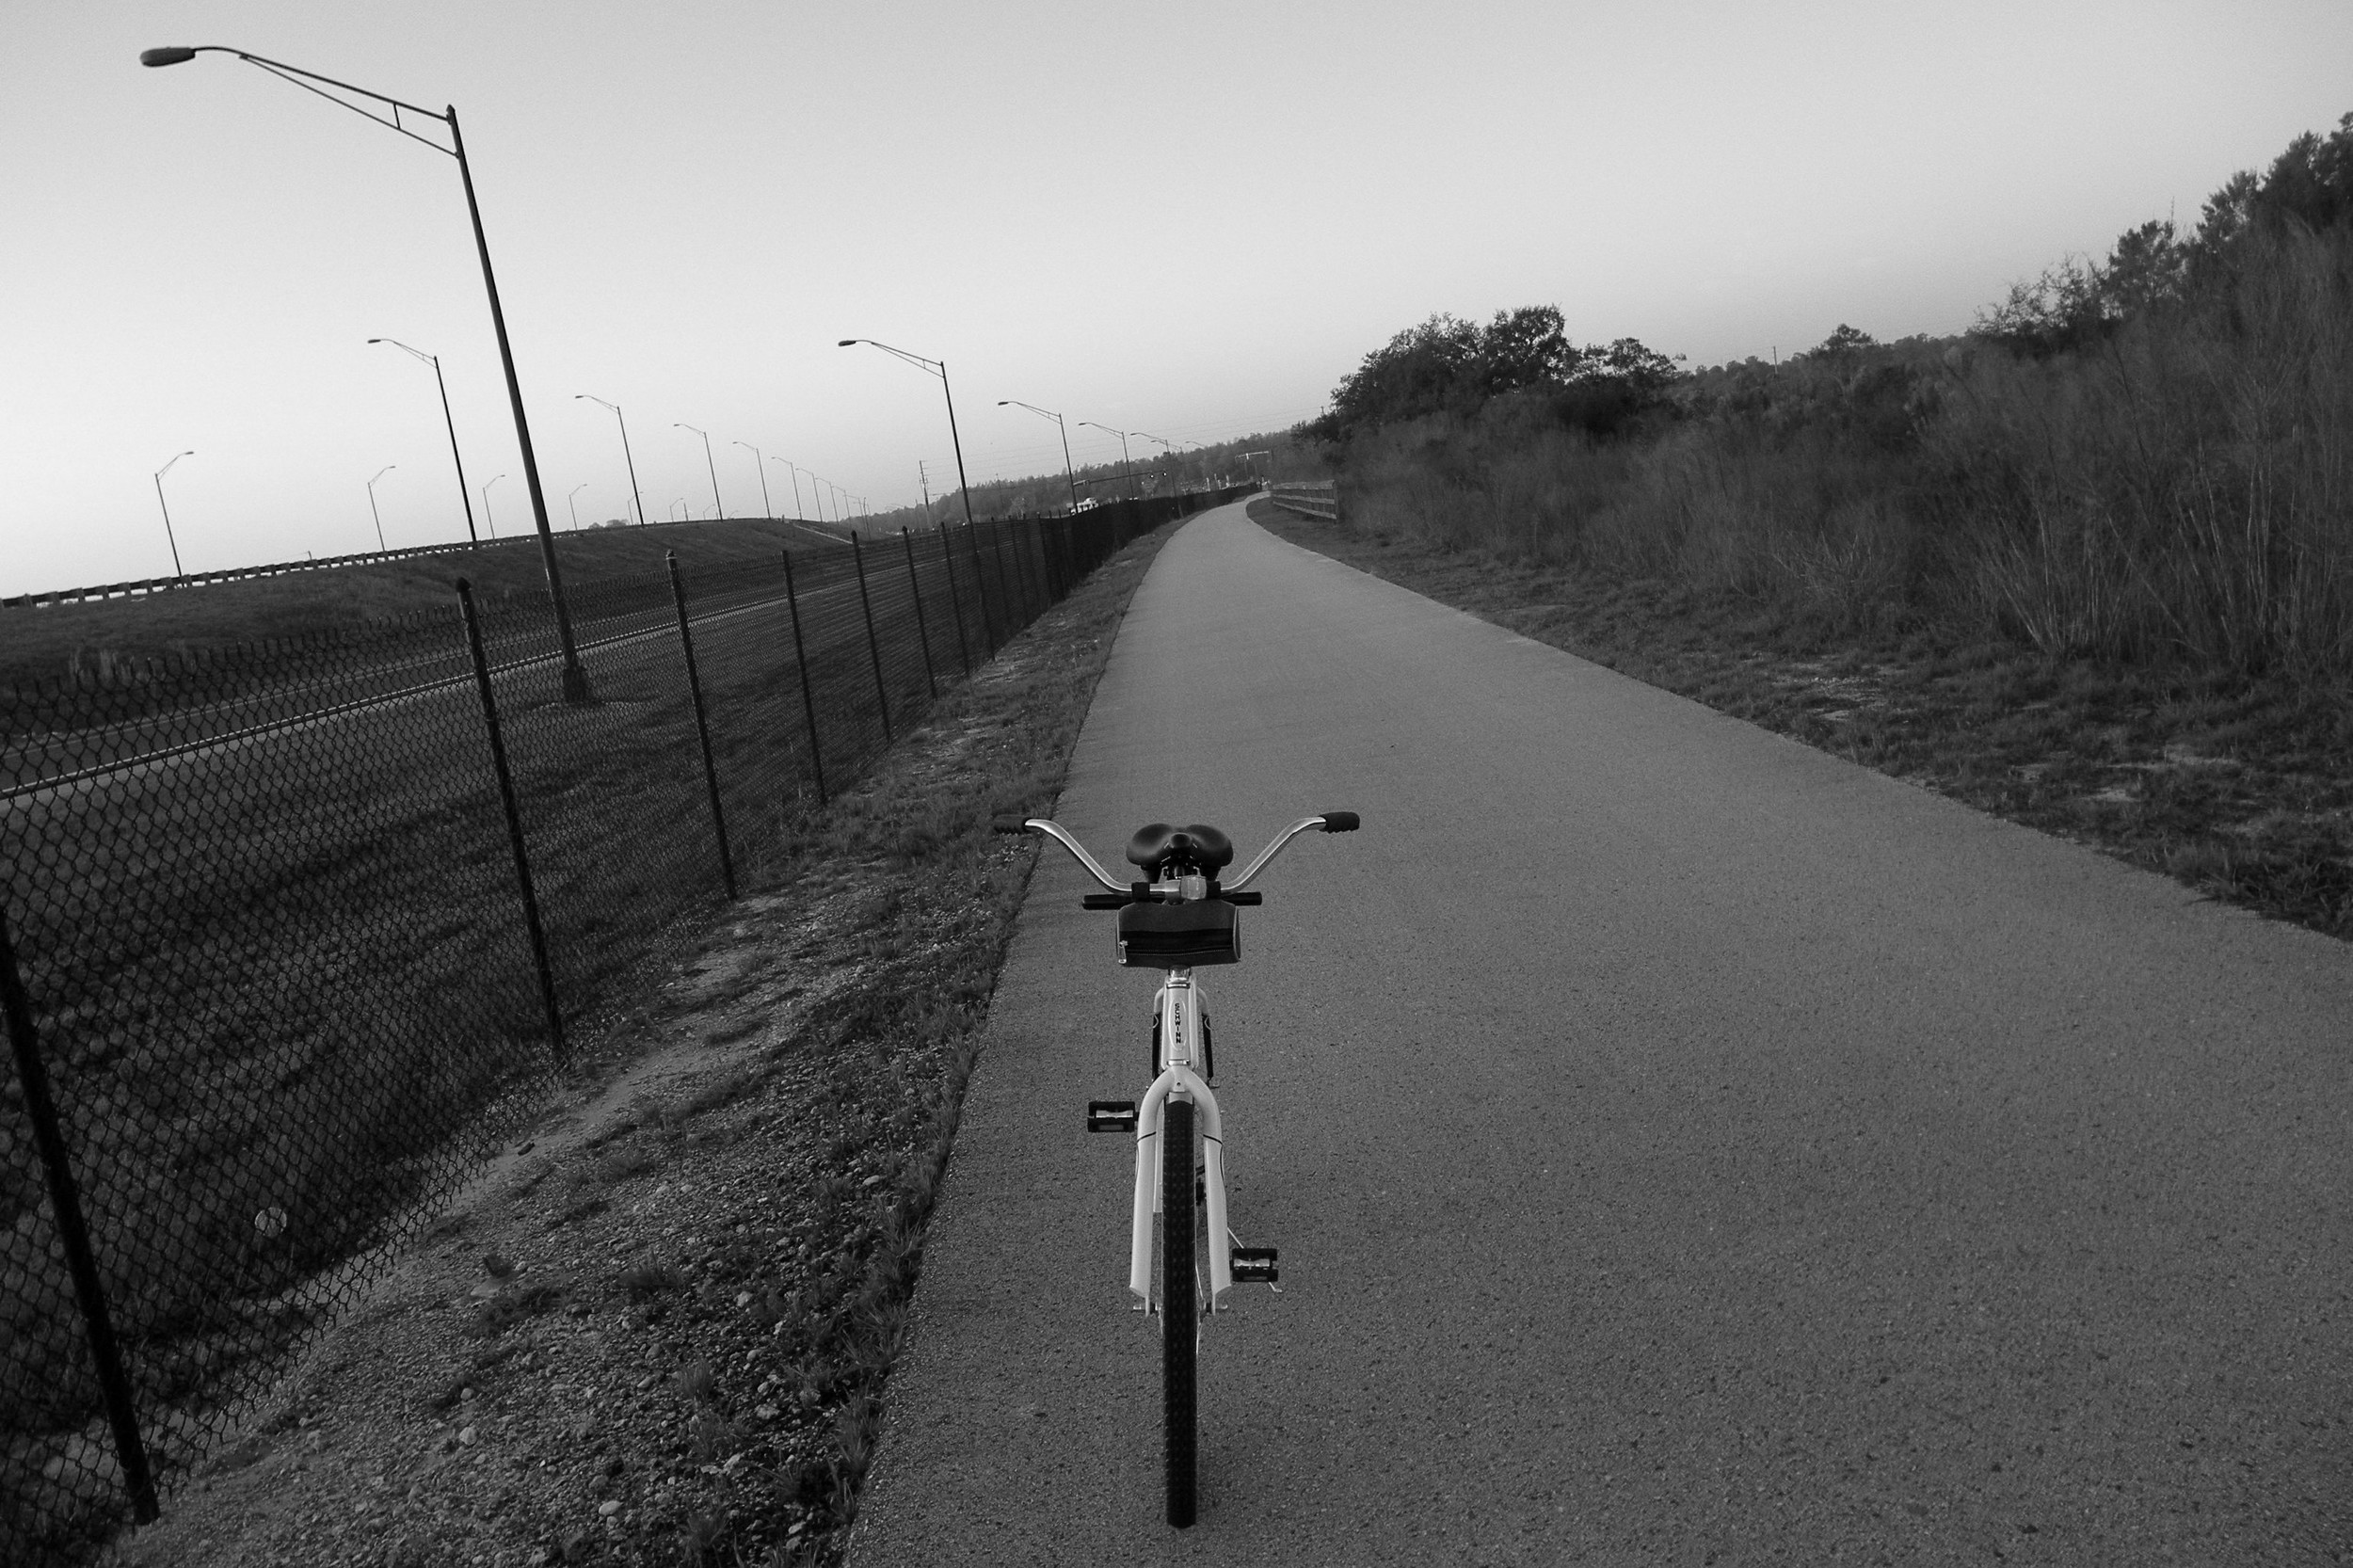 a black and white photo of a bicycle going down a road